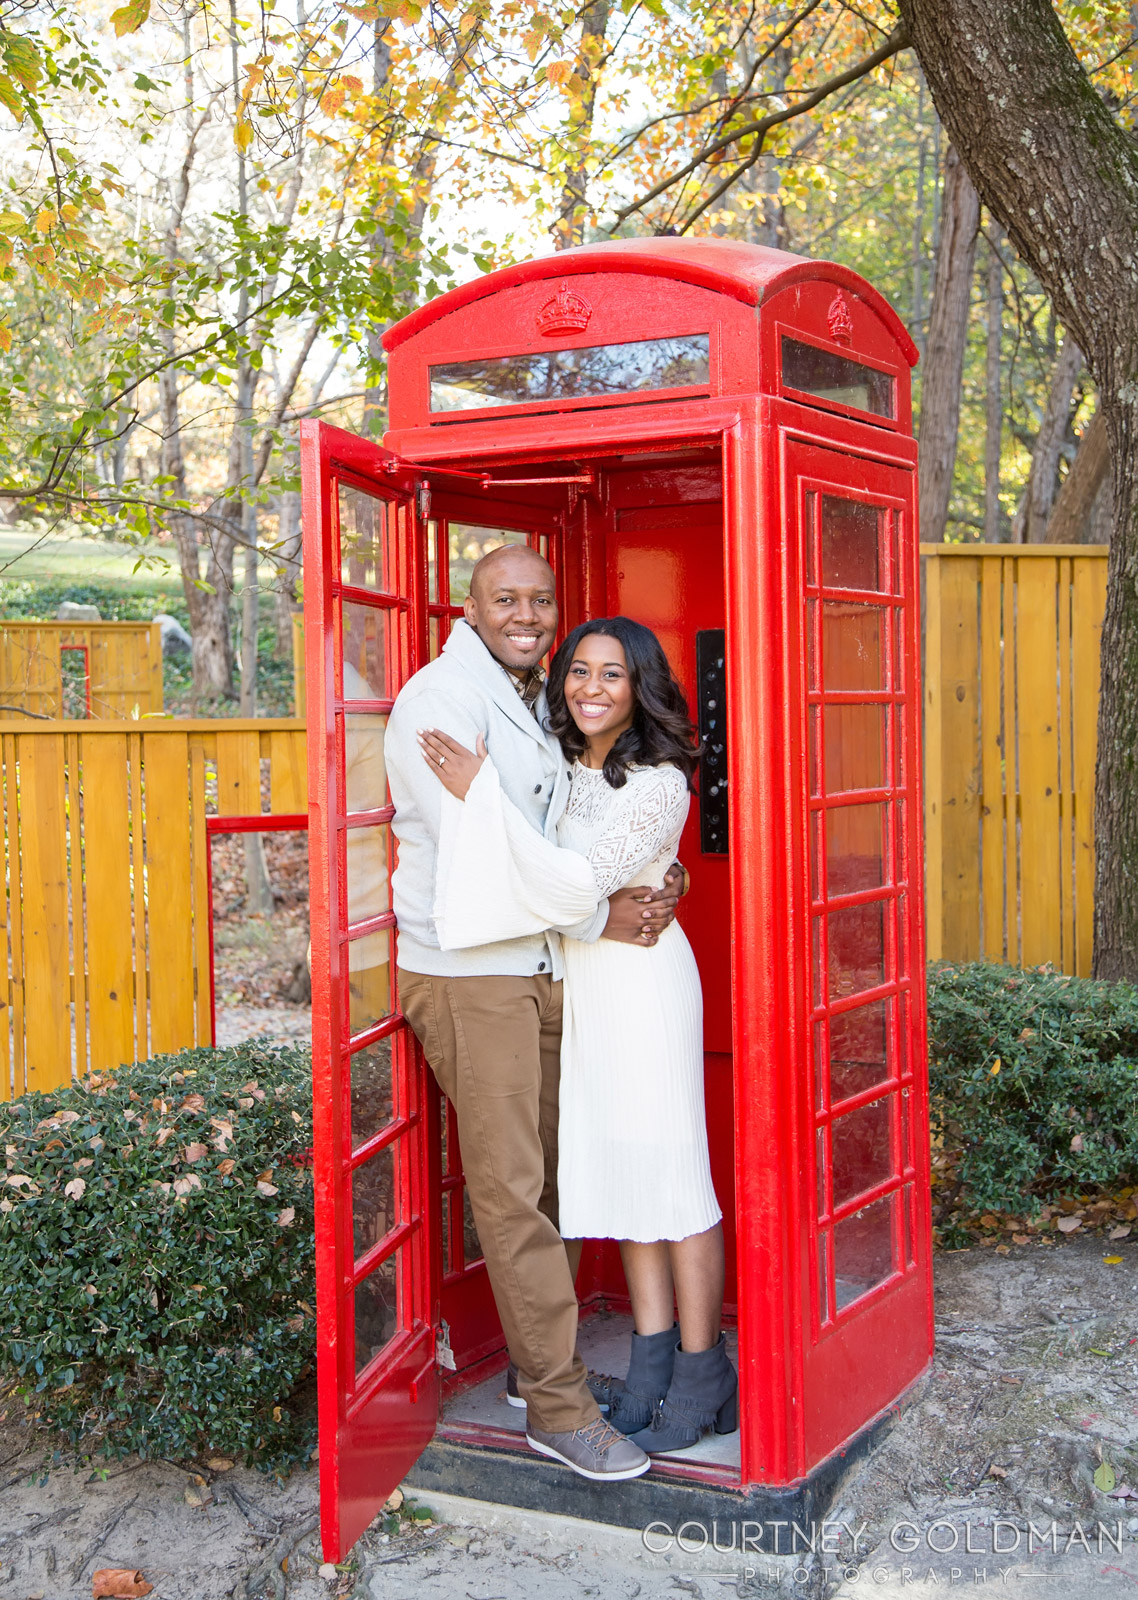 Atlanta-Couples-Engagement-Proposal-Photography-by-Courtney-Goldman-68.jpg